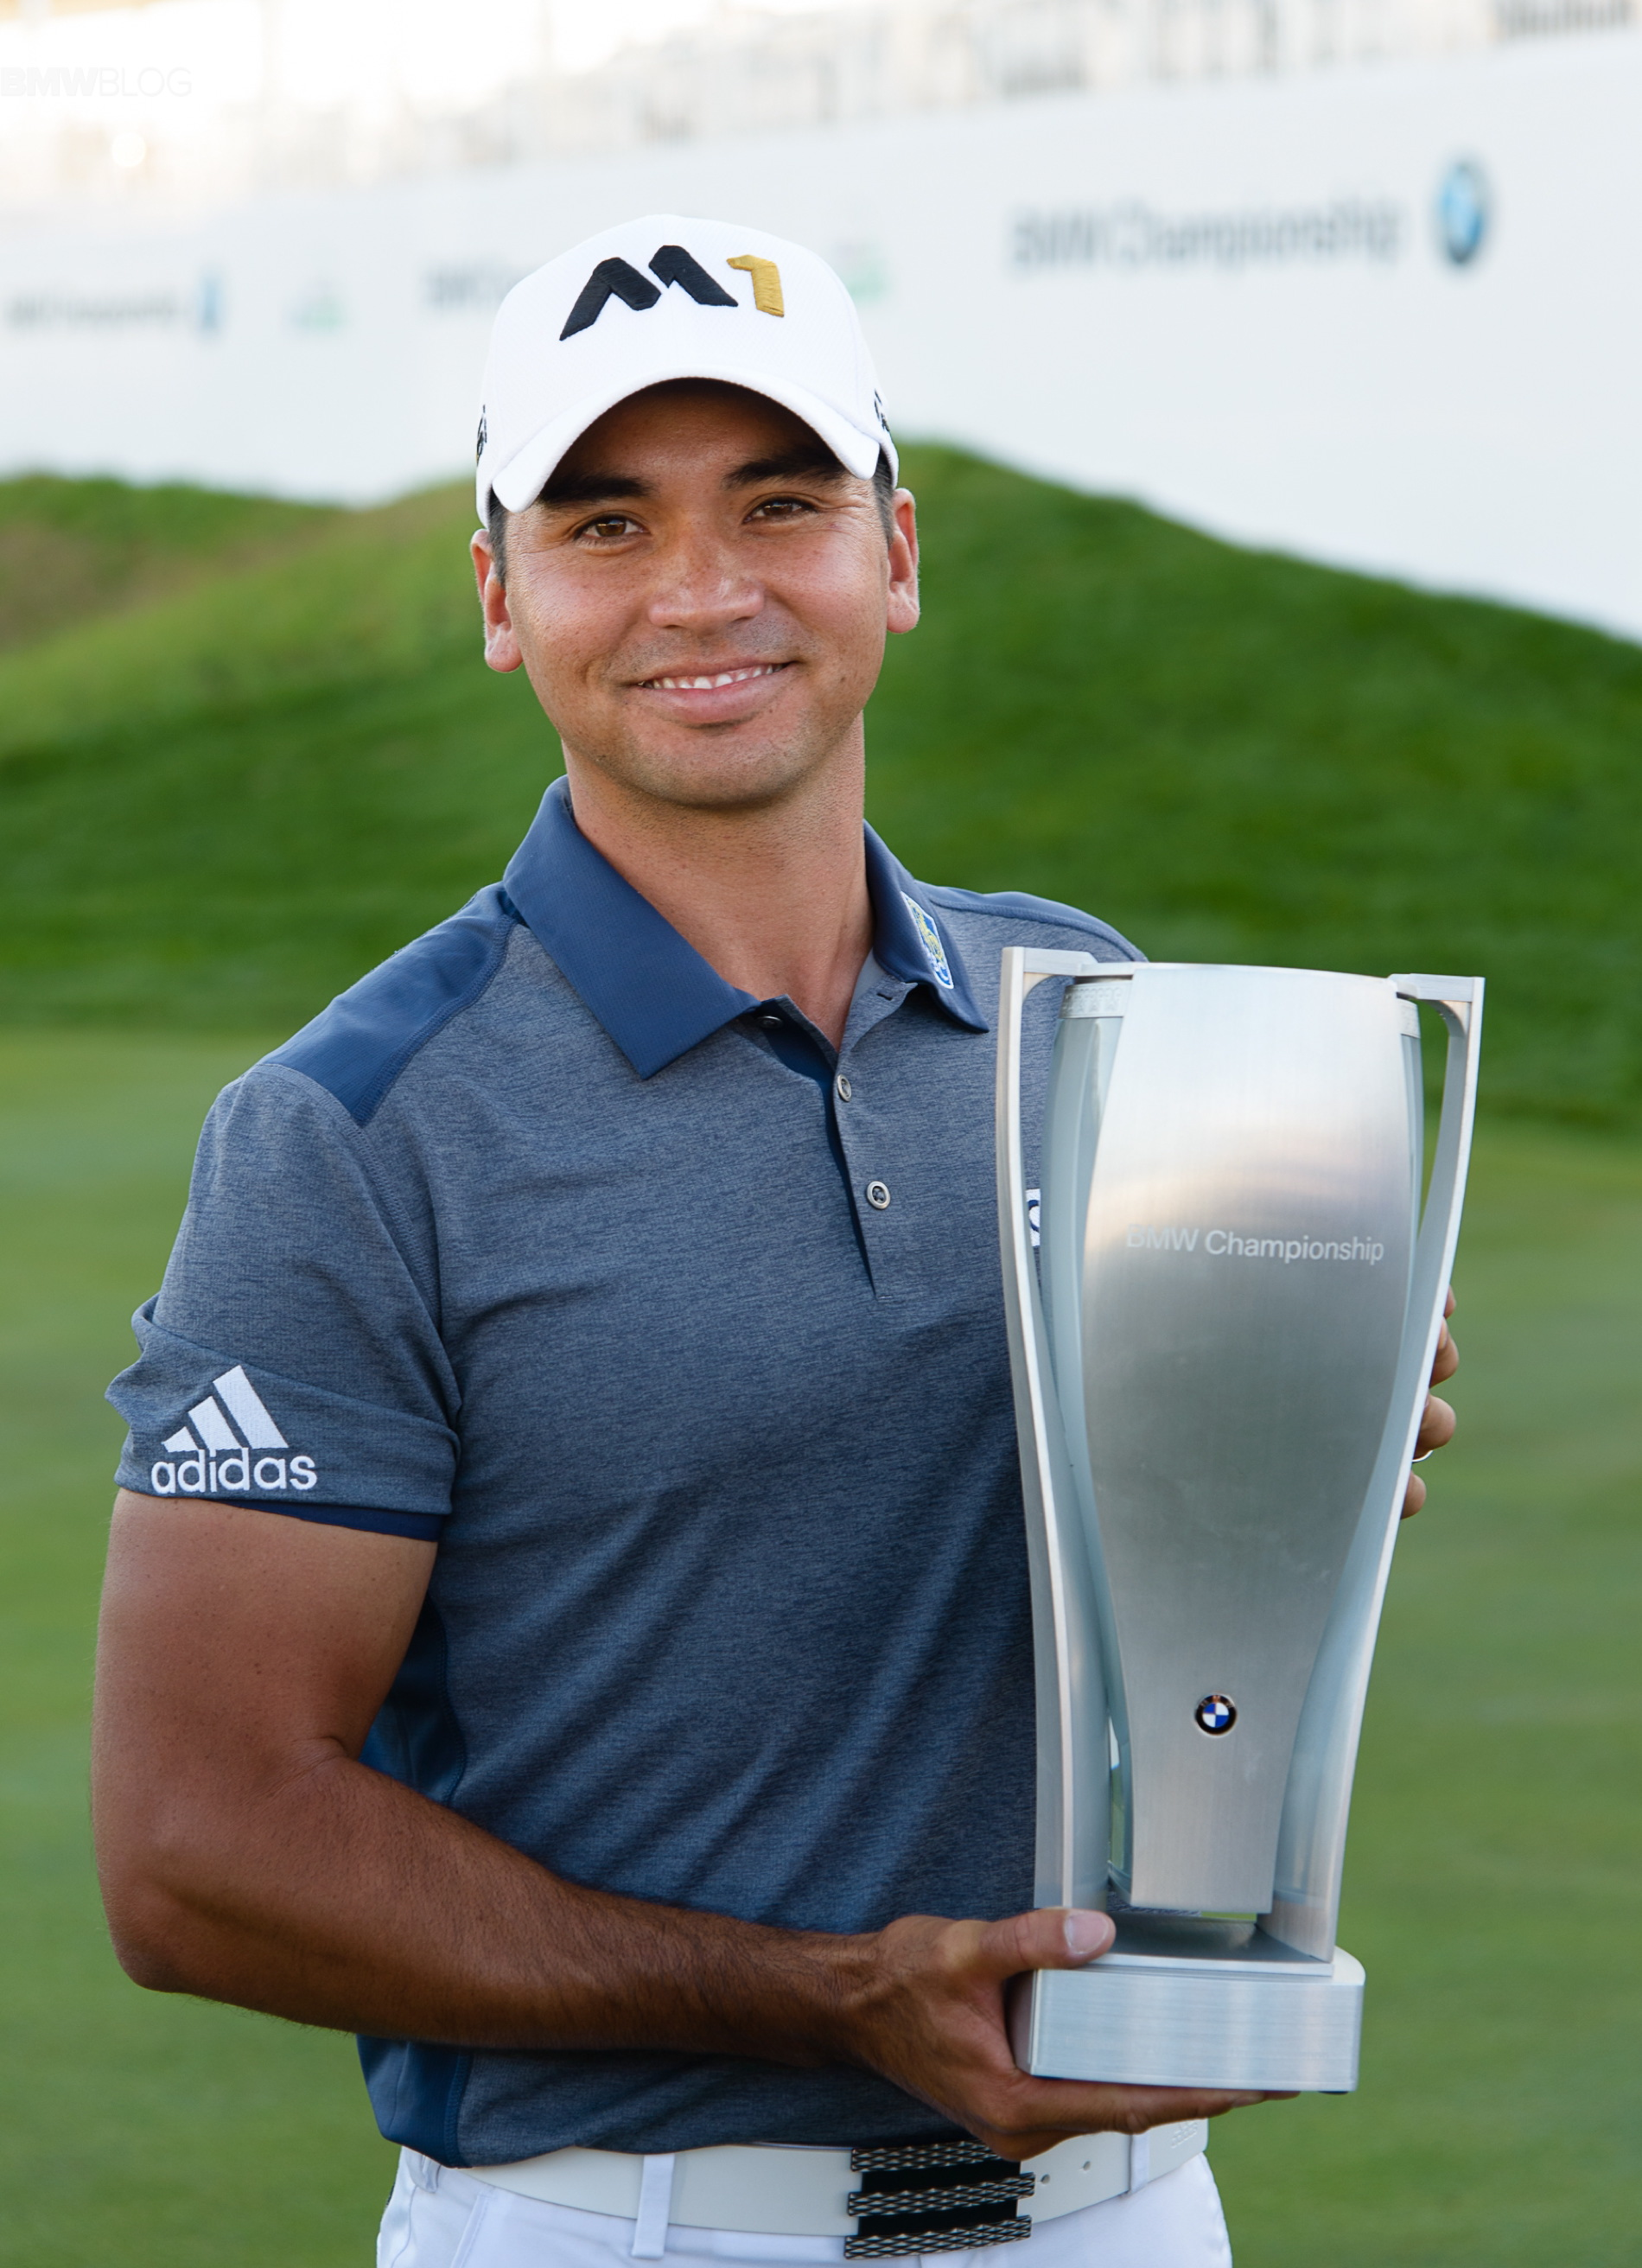 2015 BMW Golf Championship images 05